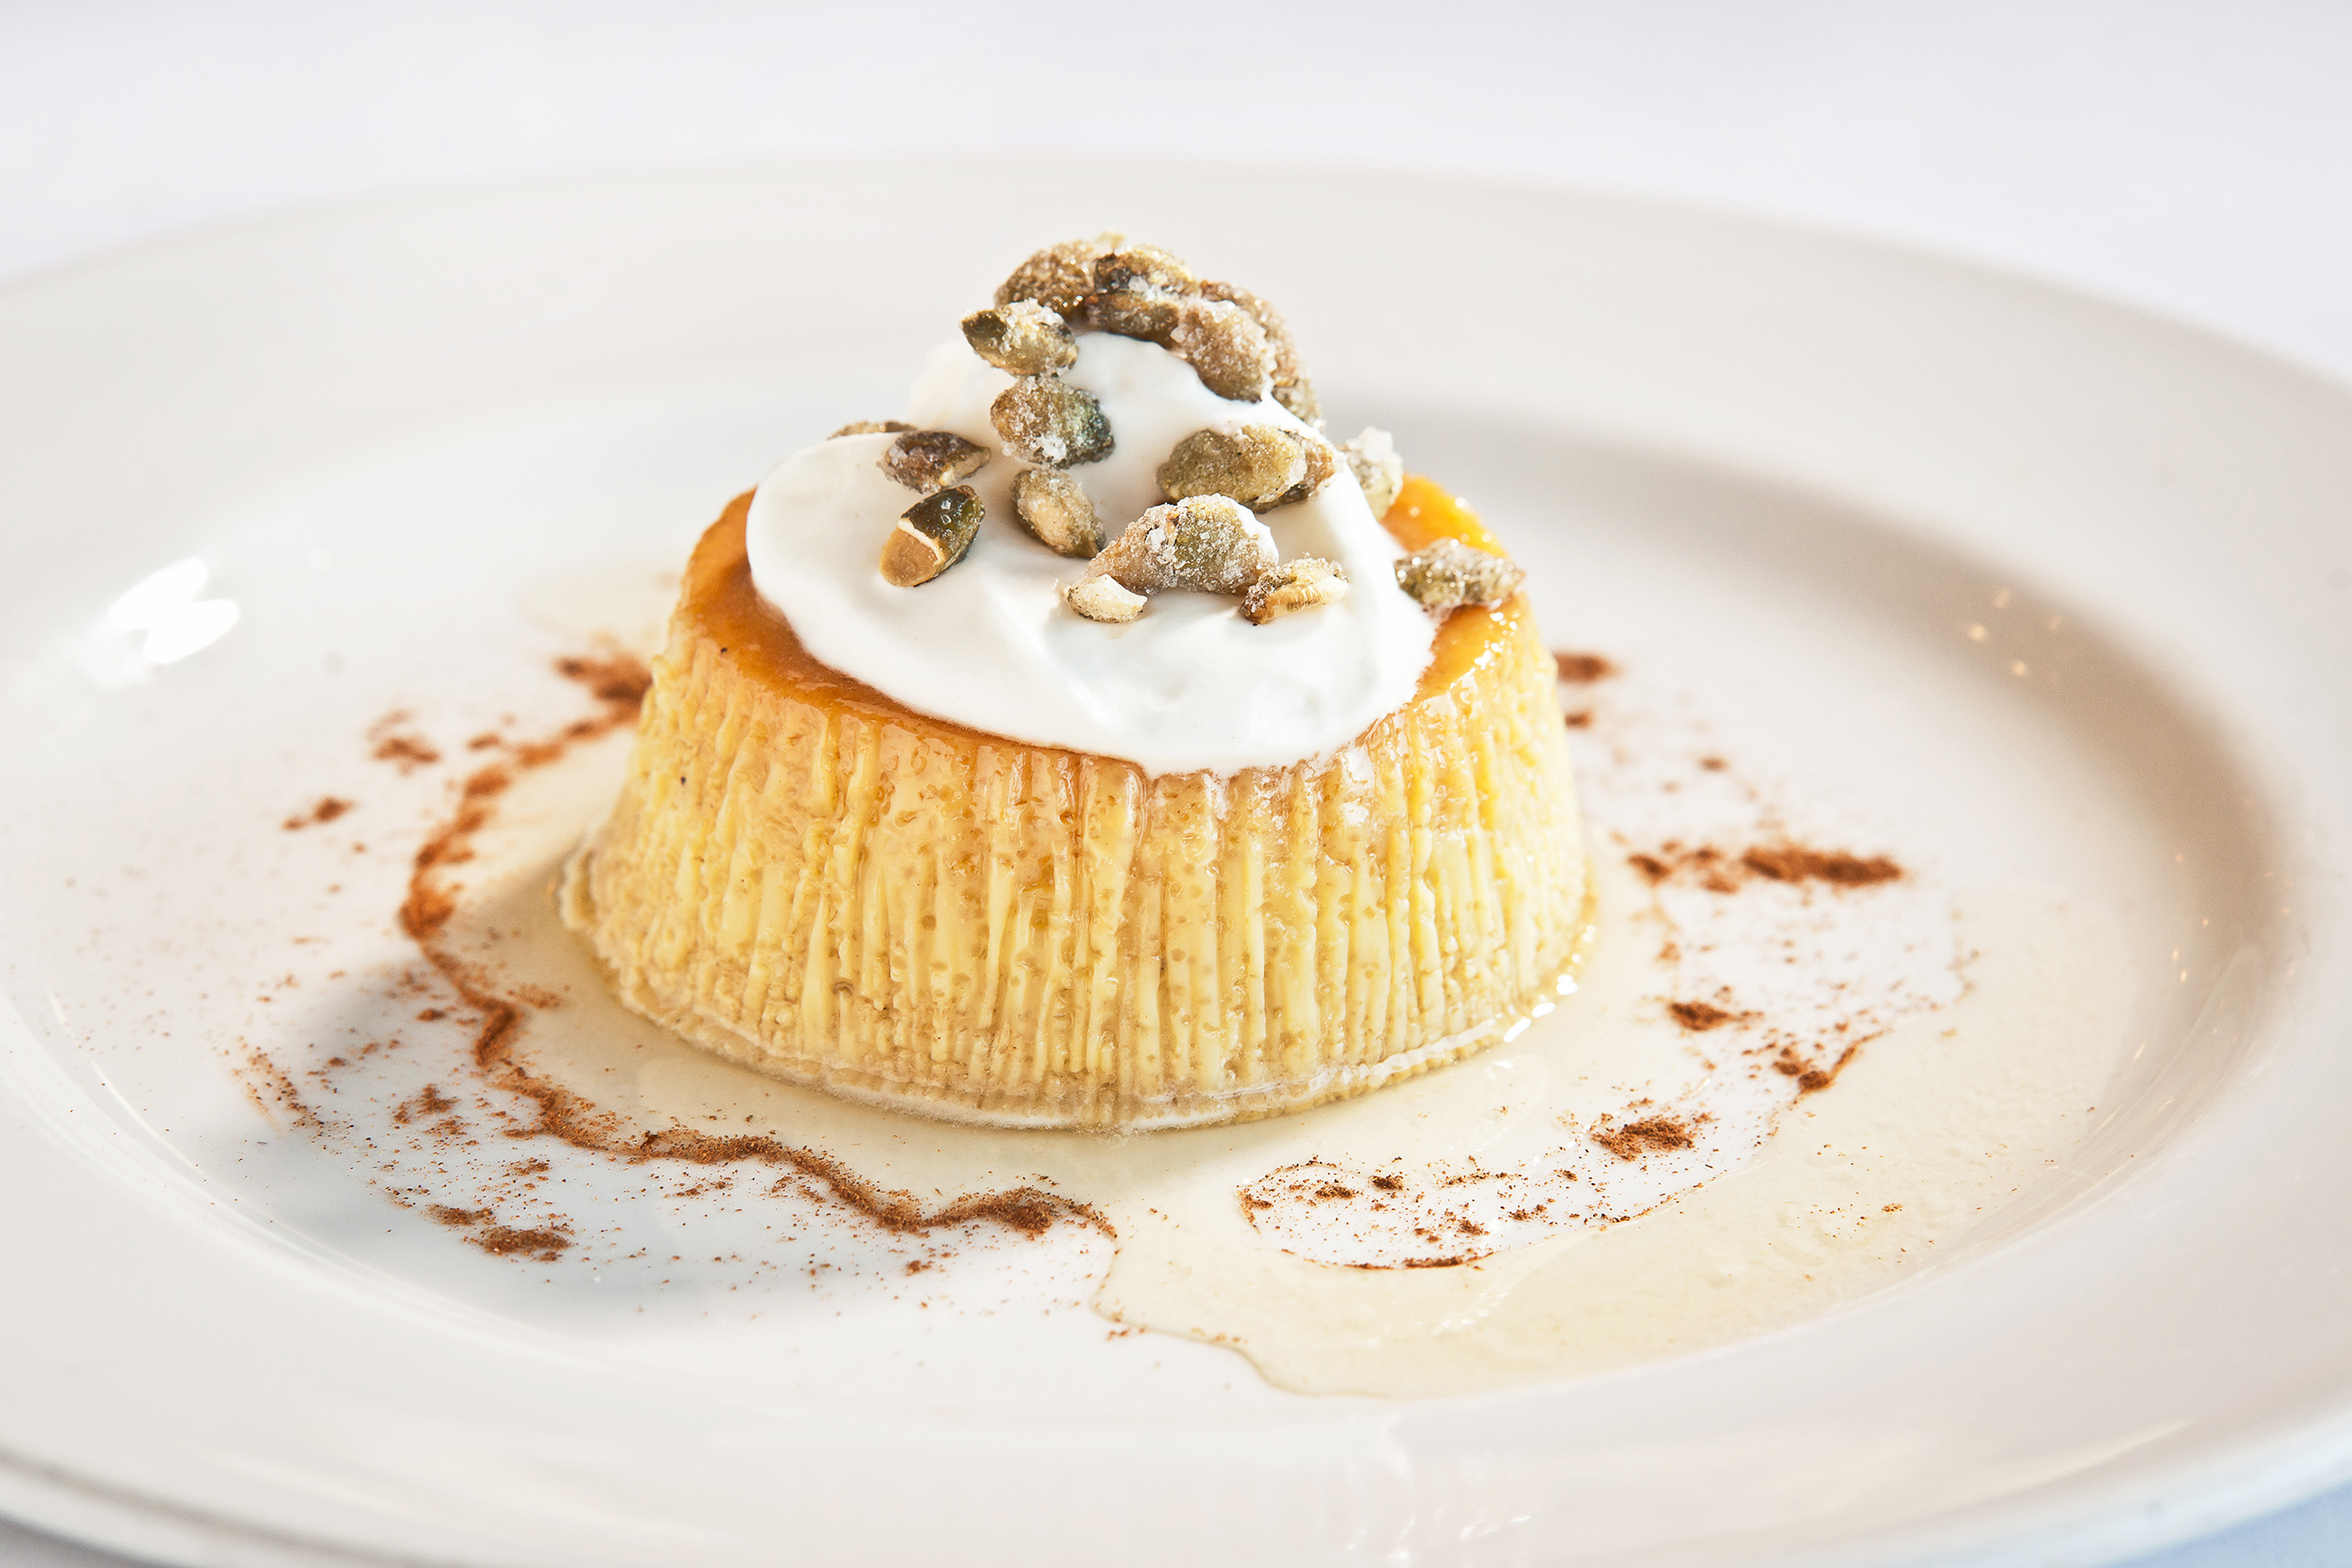 This recipe from Besito is pumpkin-carmel goodness credit: besito, roslyn, ny